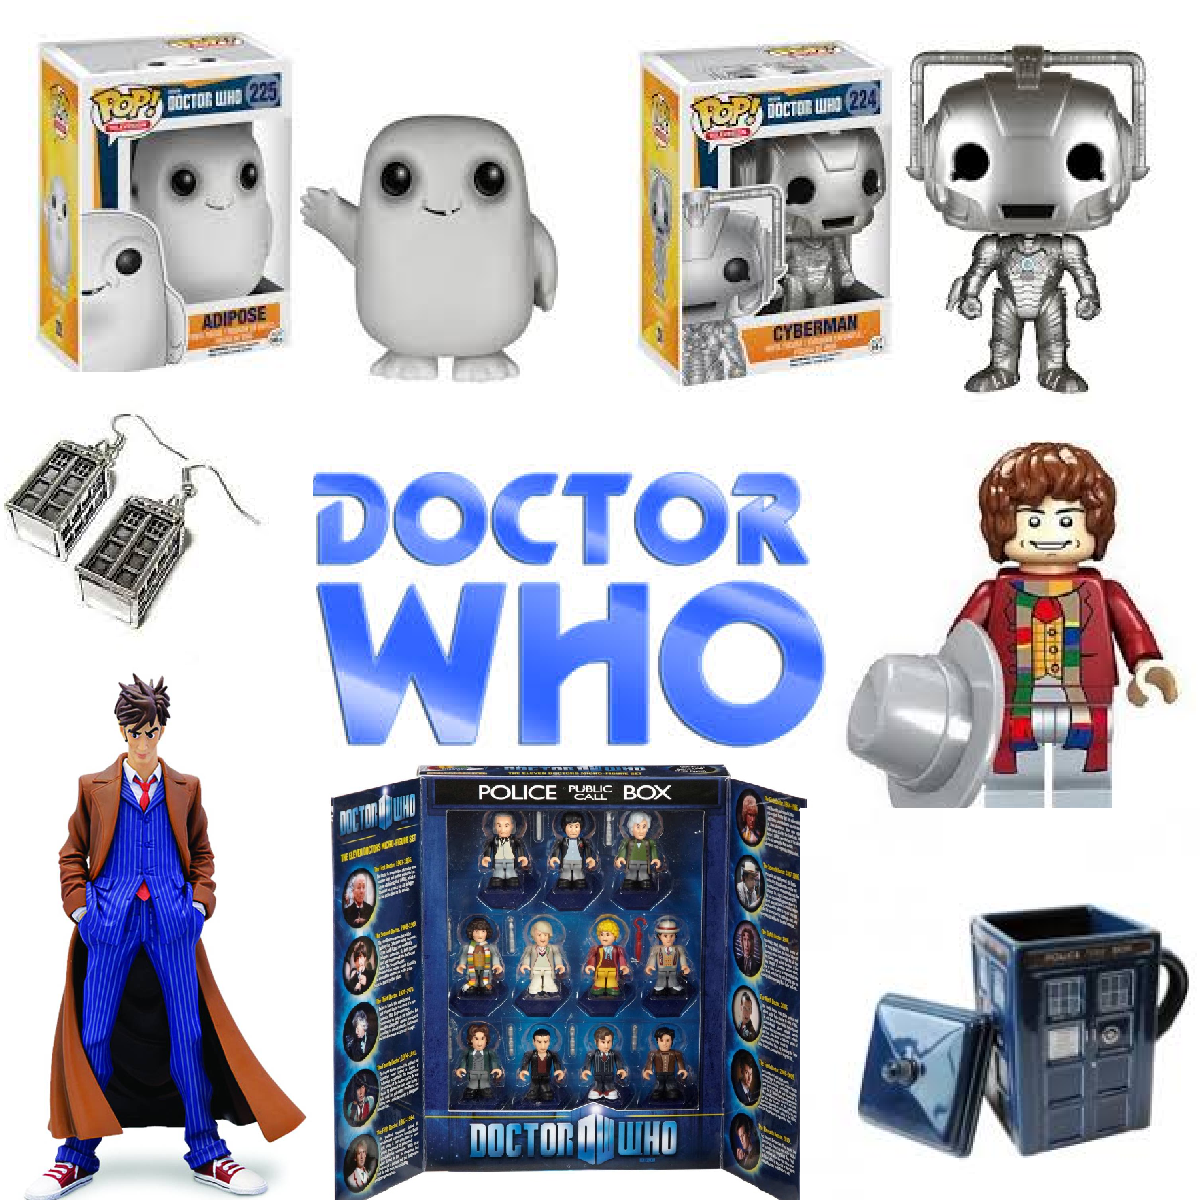 doctor who collectables for sale at eterniacollectables.co